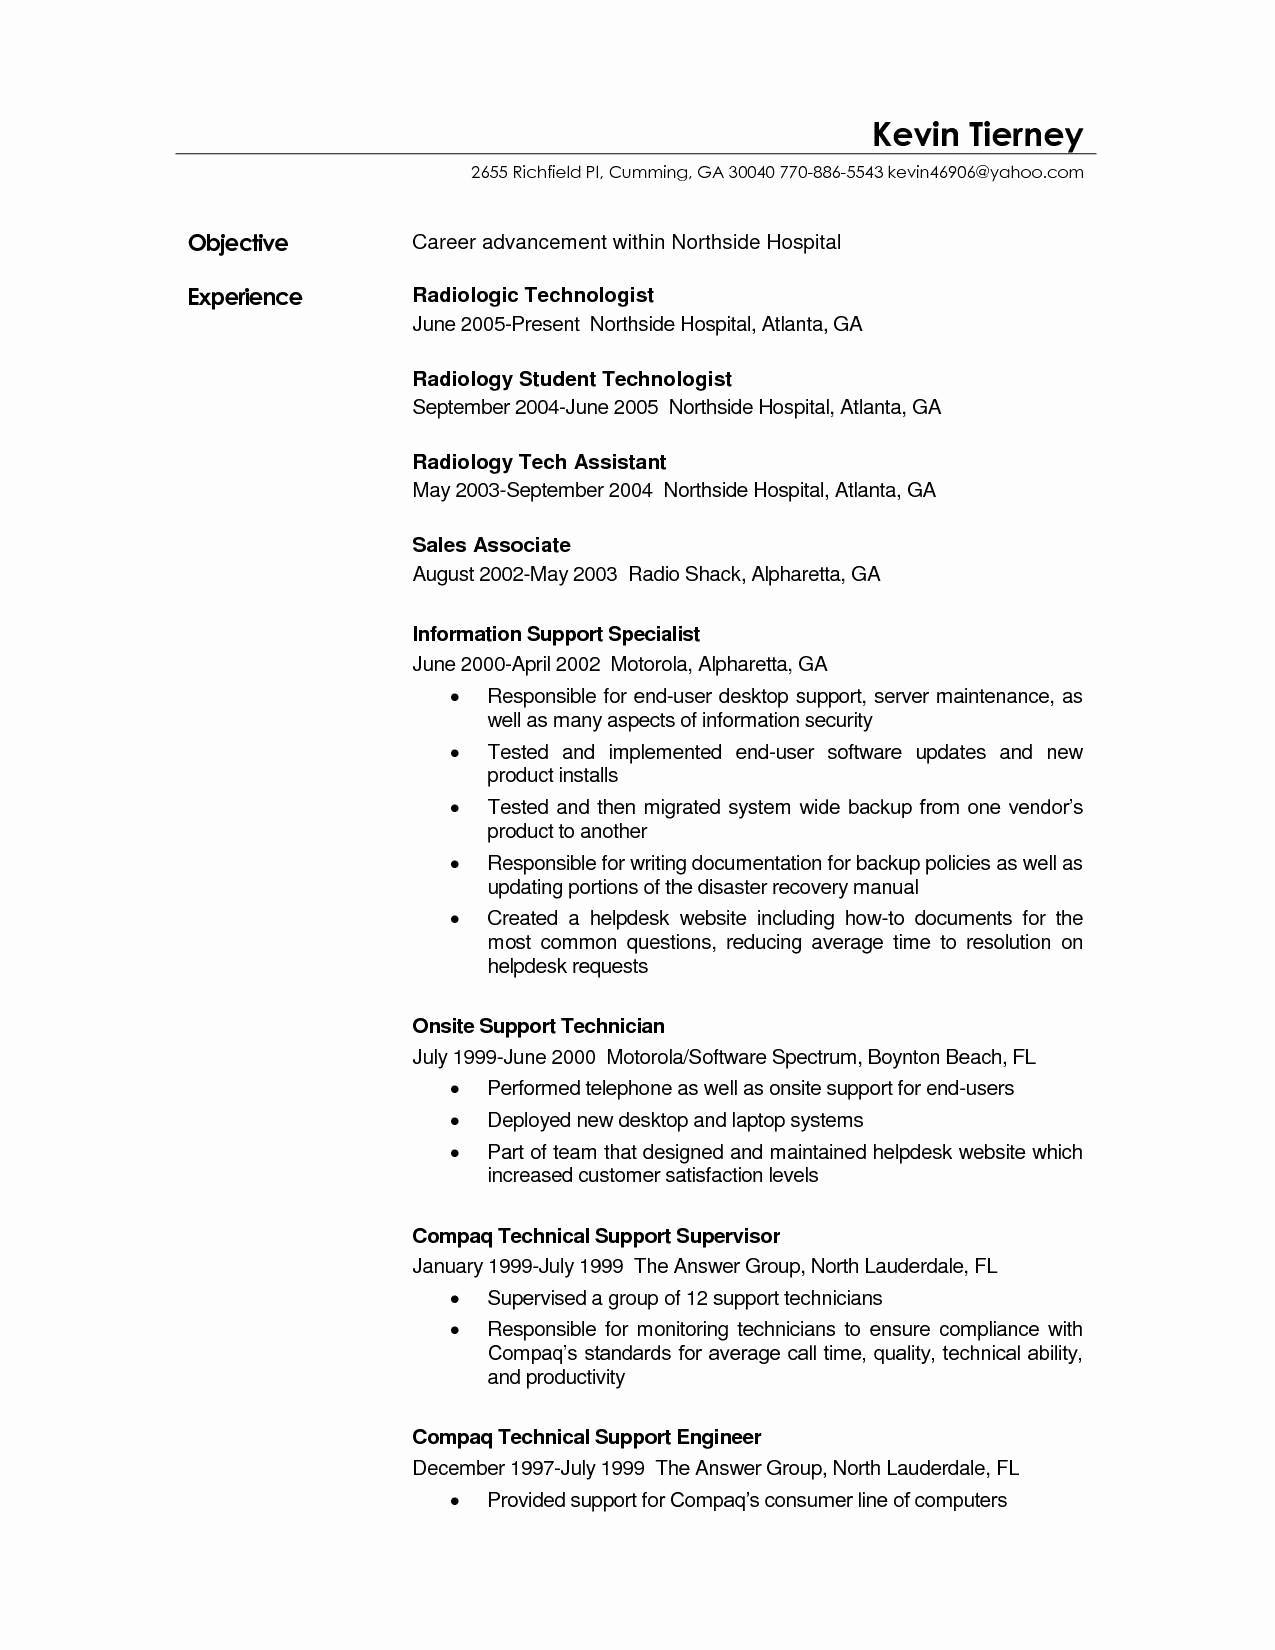 surgical tech resume template example-37 Fresh Surgical Tech Resume Sample 12-k